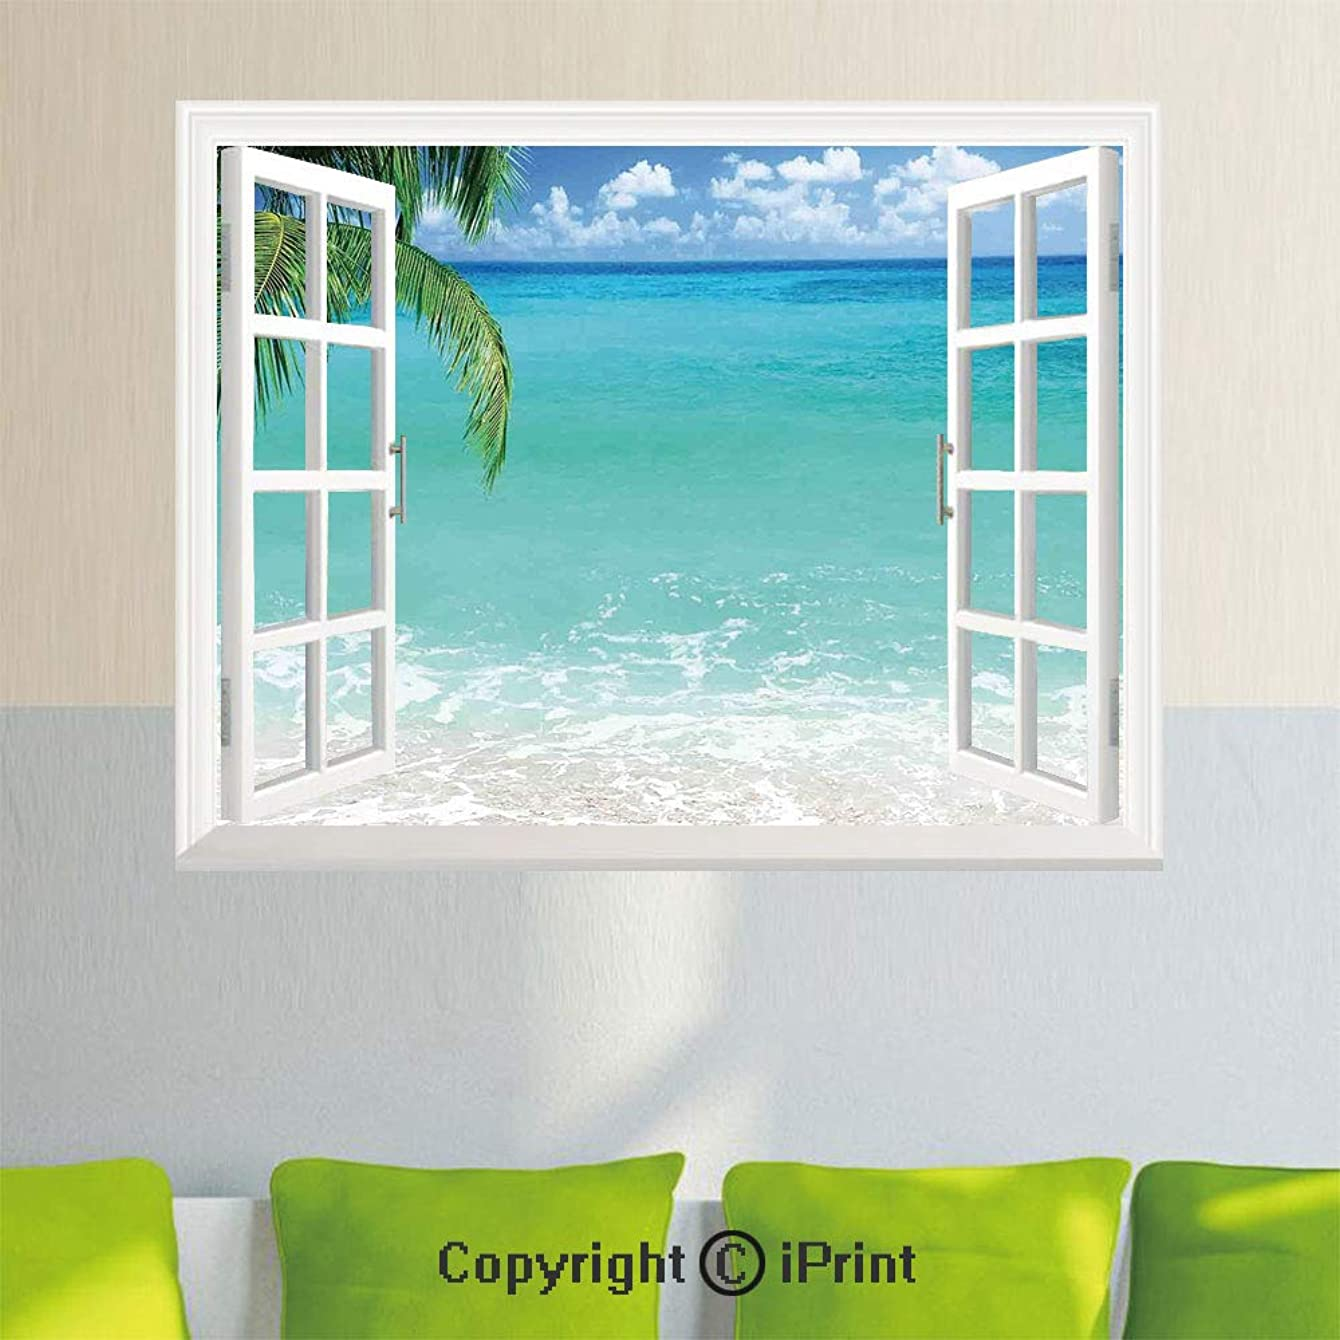 Delicate Wall Decal Sticker,Exotic Lebanon Beach Panoramic Sea View with Clean Water and Blue Sky,35.4X 23.6inch,Open Simulation Window Stickers